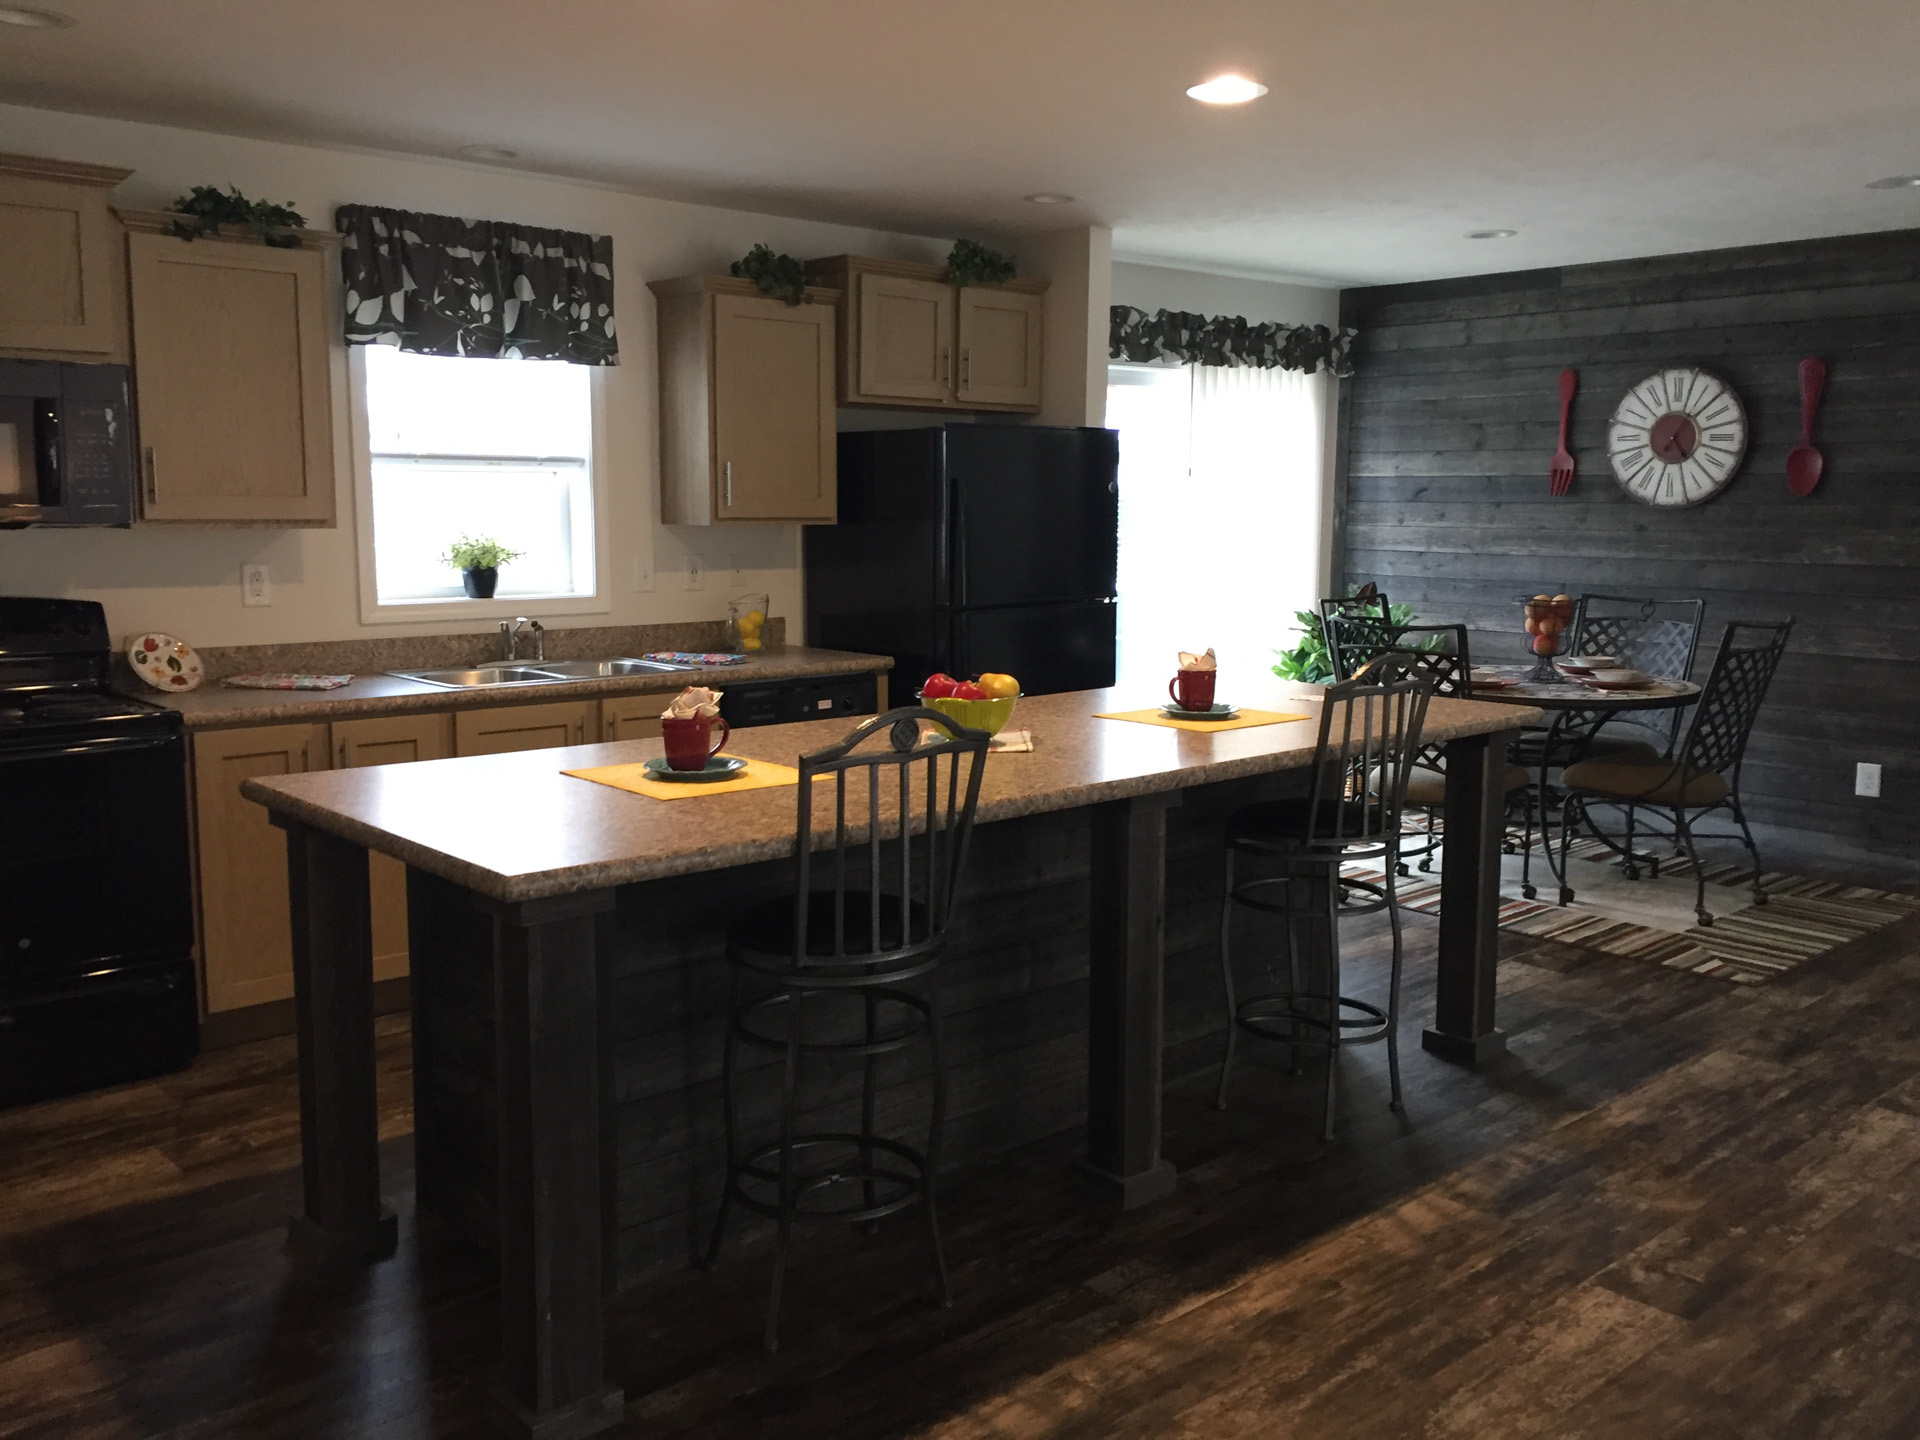 Limited kitchen island